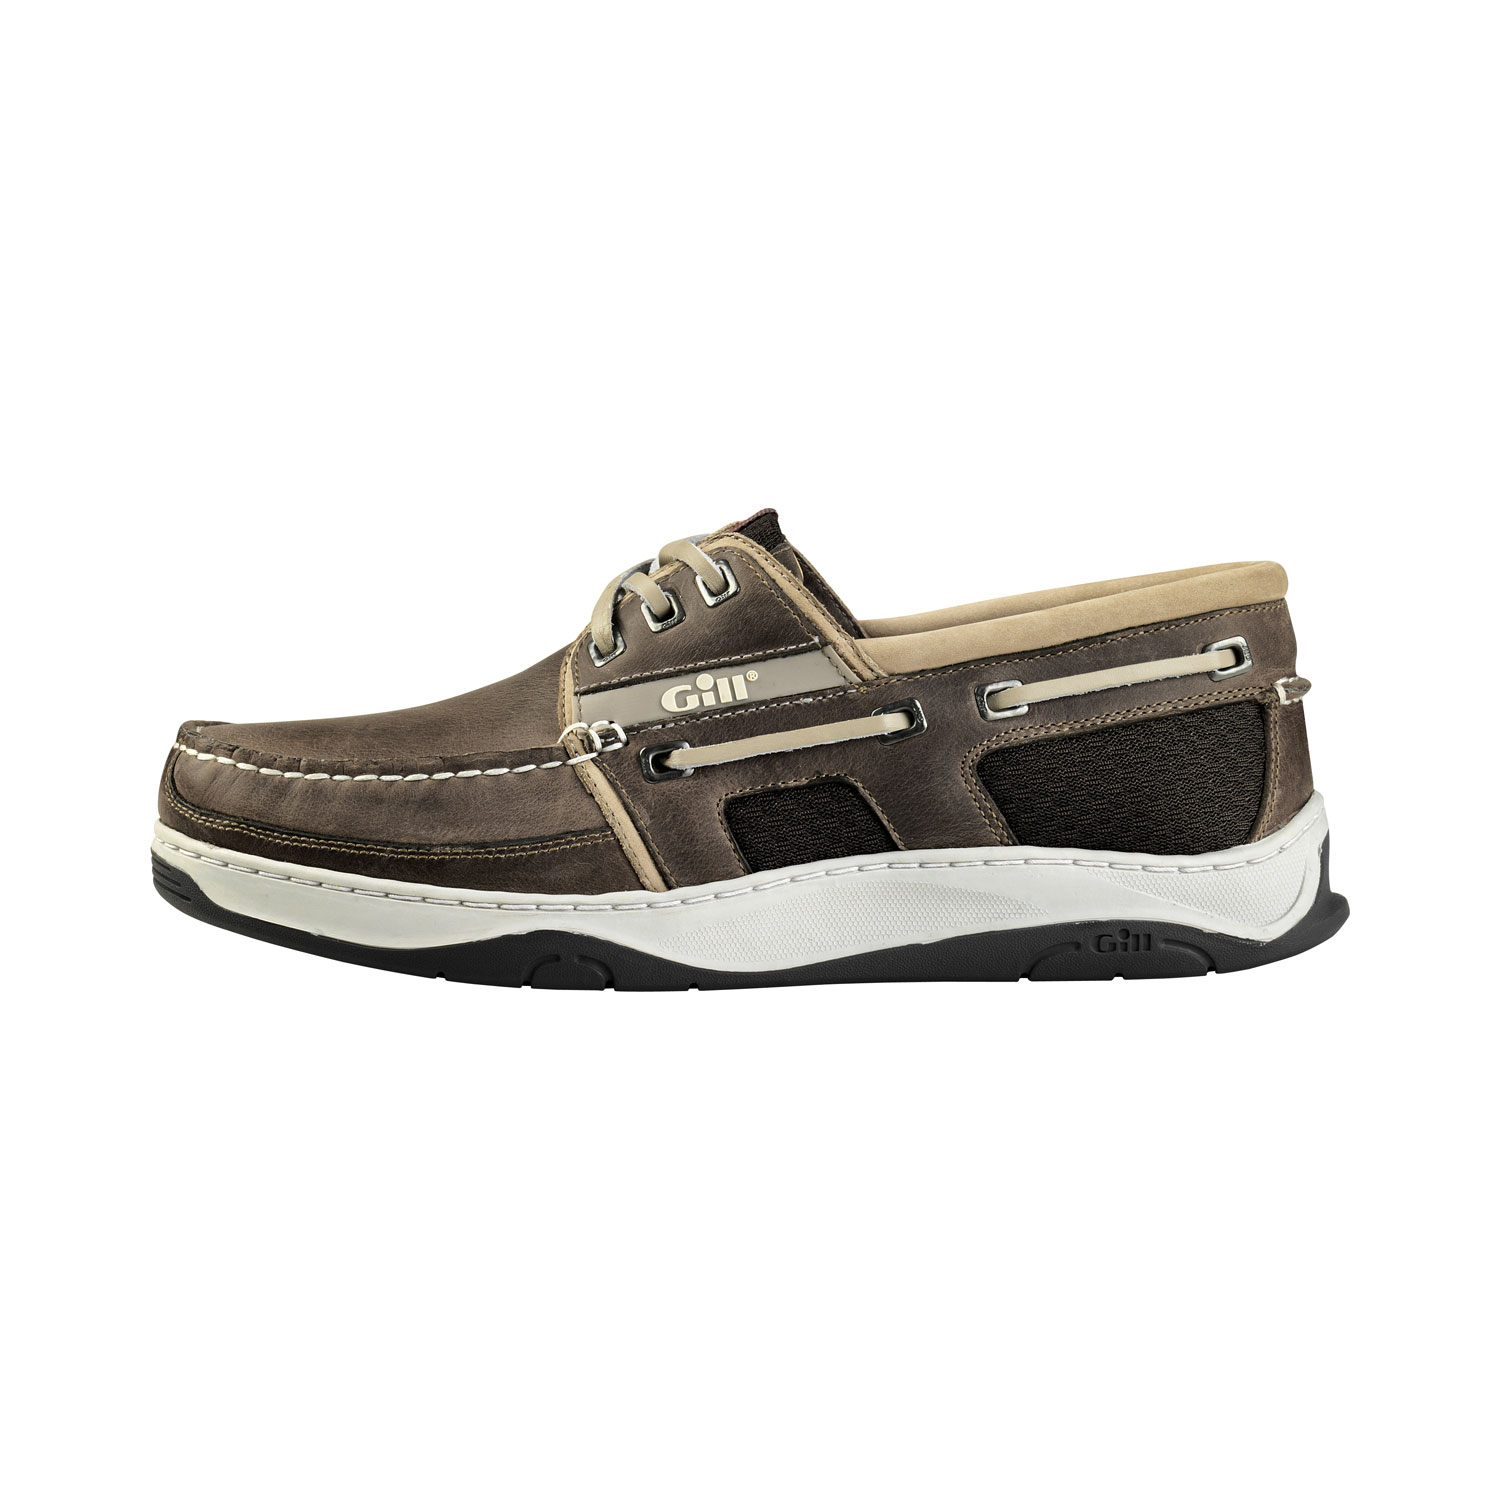 Gill Deck Shoes Uk